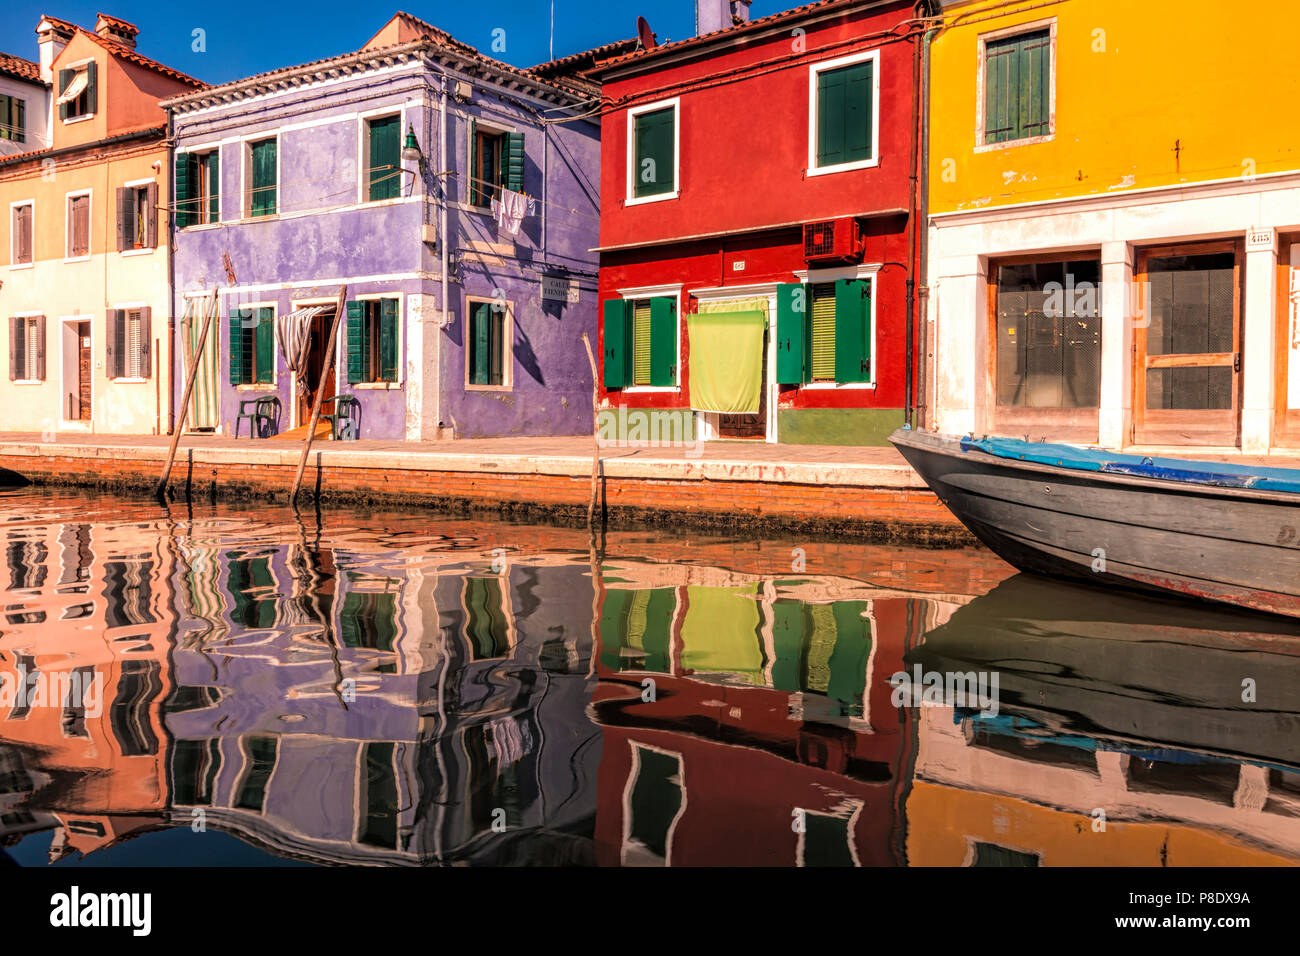 Colorful Burano, one of the Venetial islands - Stock Image